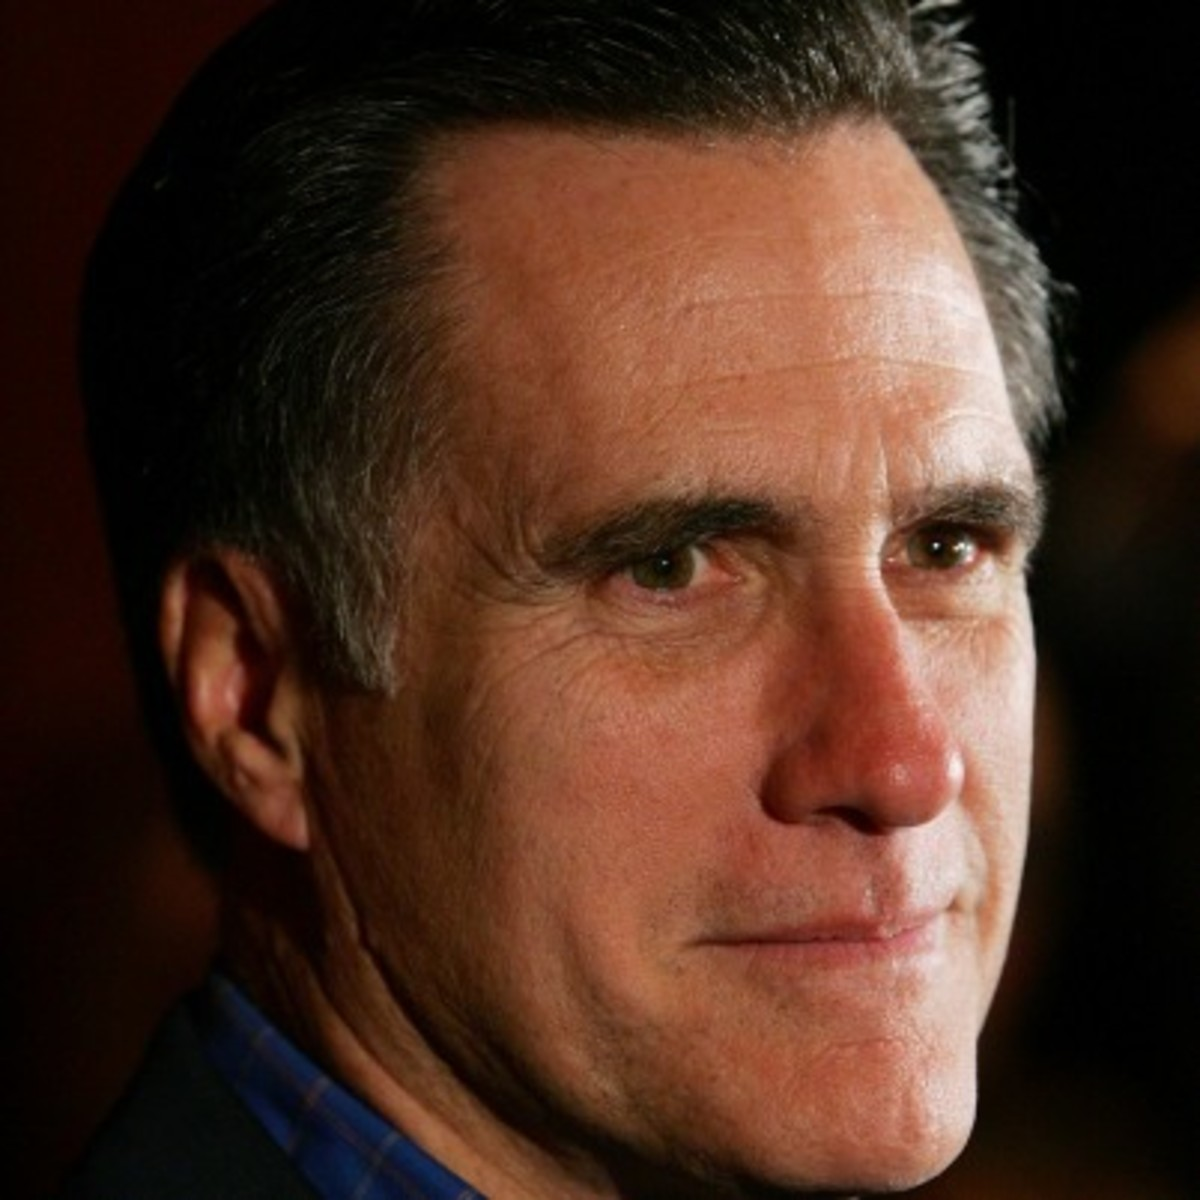 romney dating Meet romney singles online & chat in the forums dhu is a 100% free dating site to find personals & casual encounters in romney.